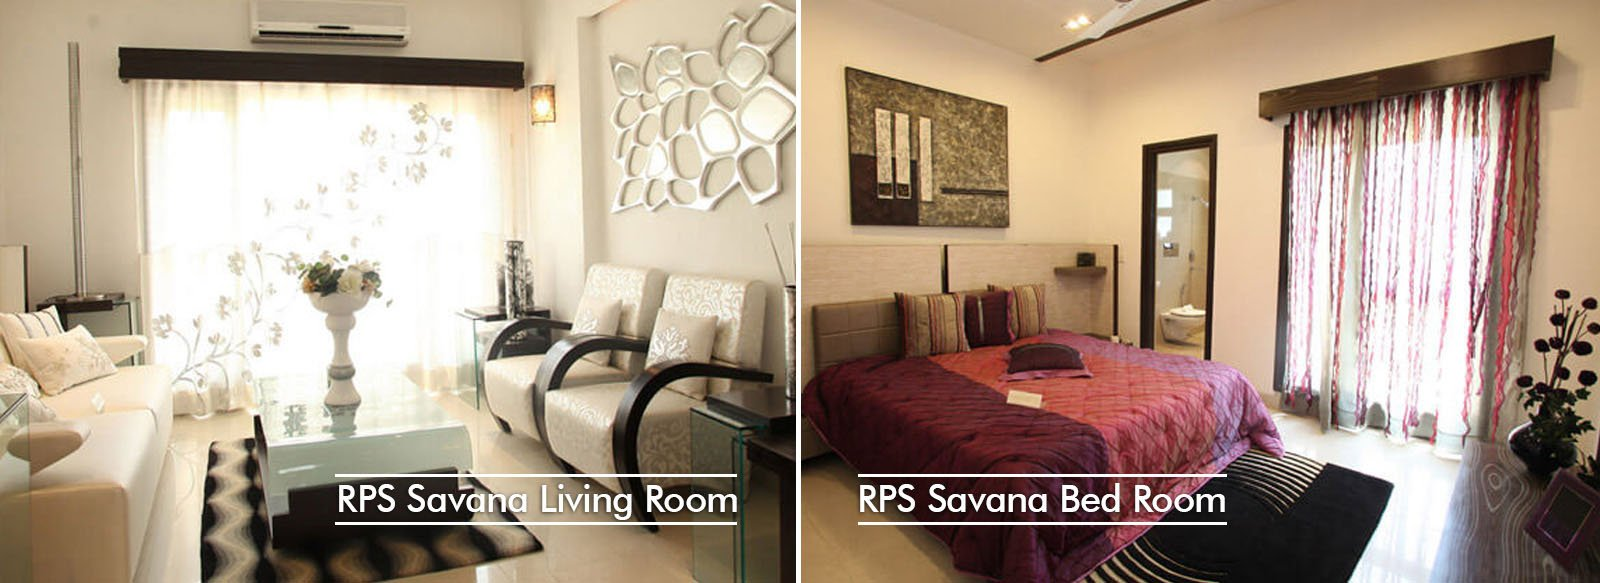 RPS Bedroom Living Room Sector 88 Faridabad